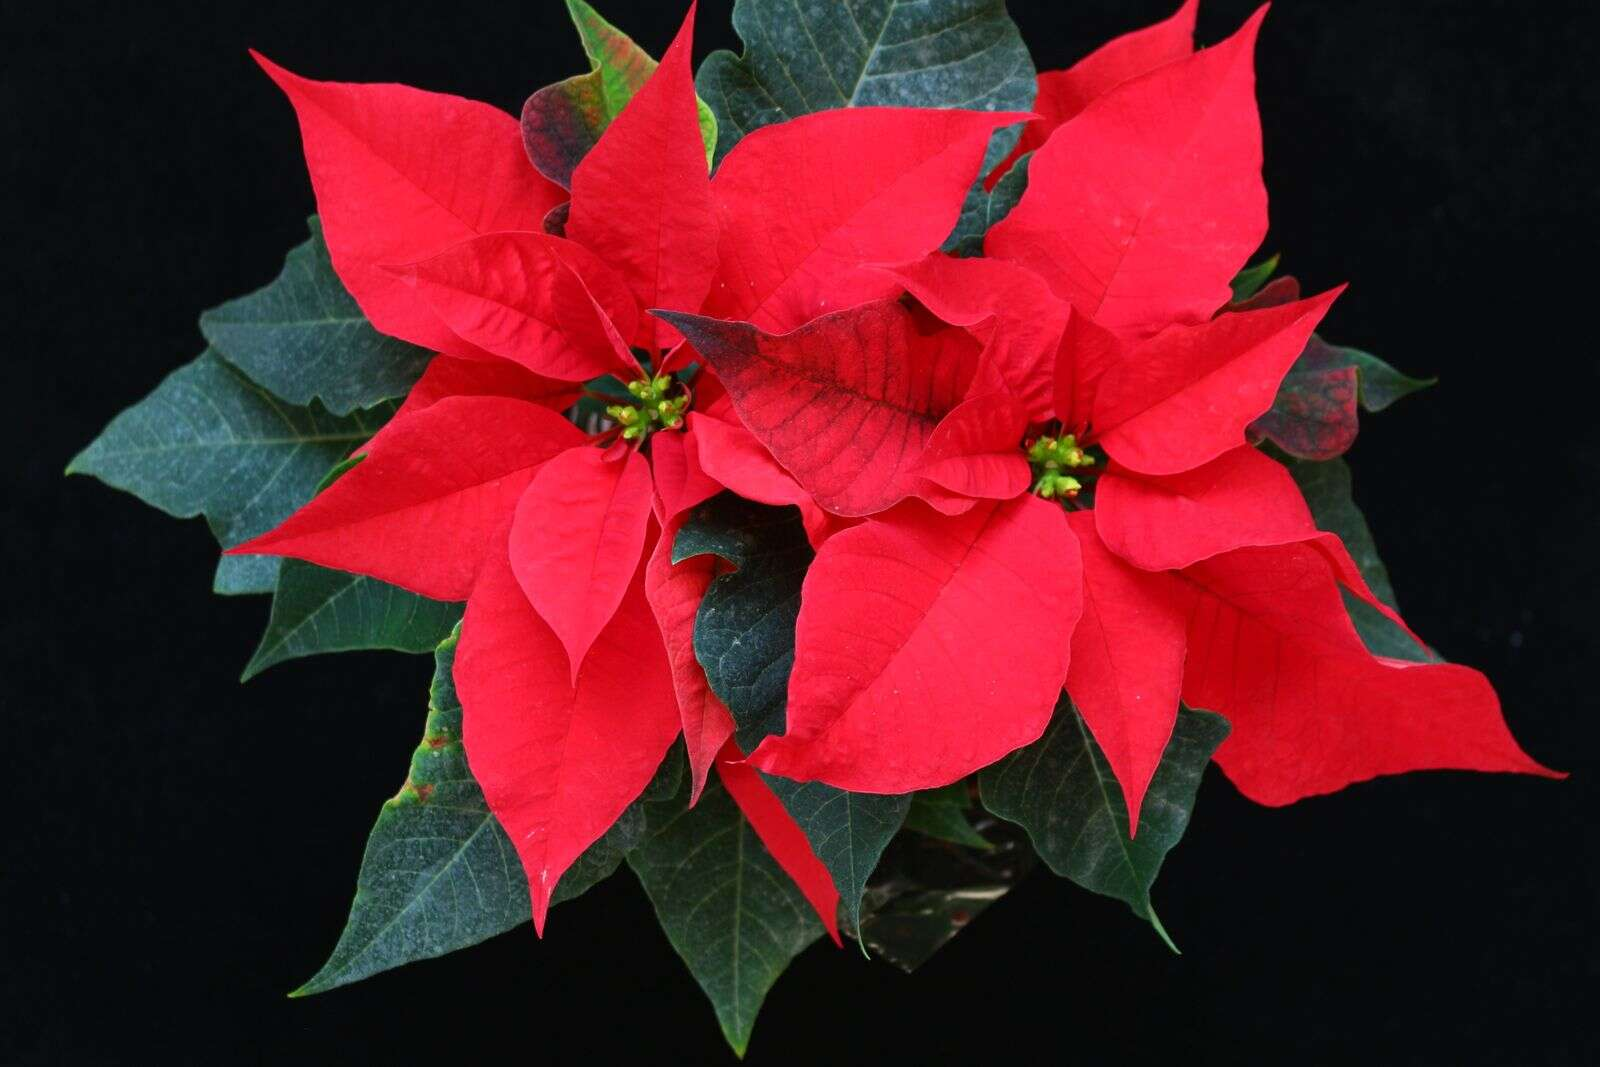 Christmas poinsettias. | Submitted by Ruth Hottel